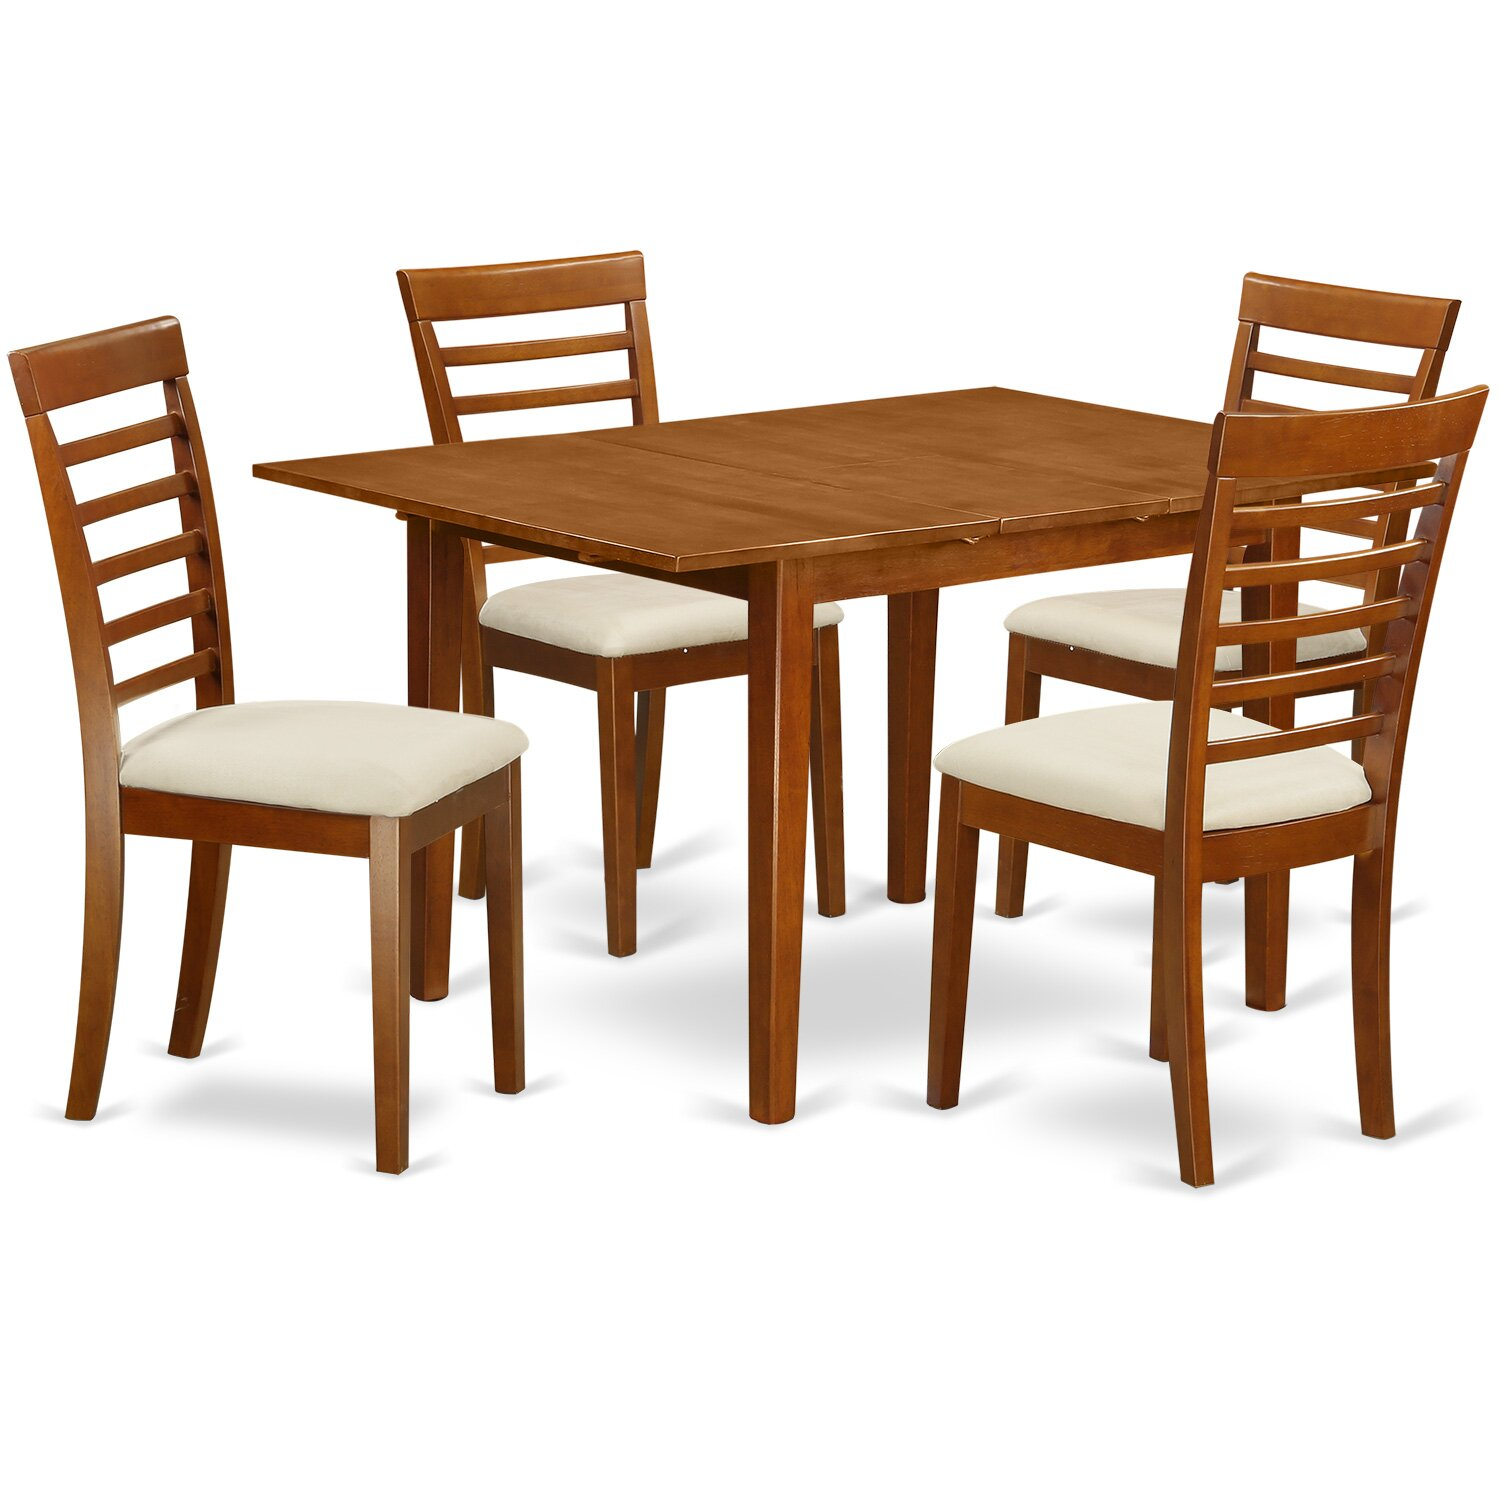 East west milan 5 piece dining set wayfair for Small space table and chair set